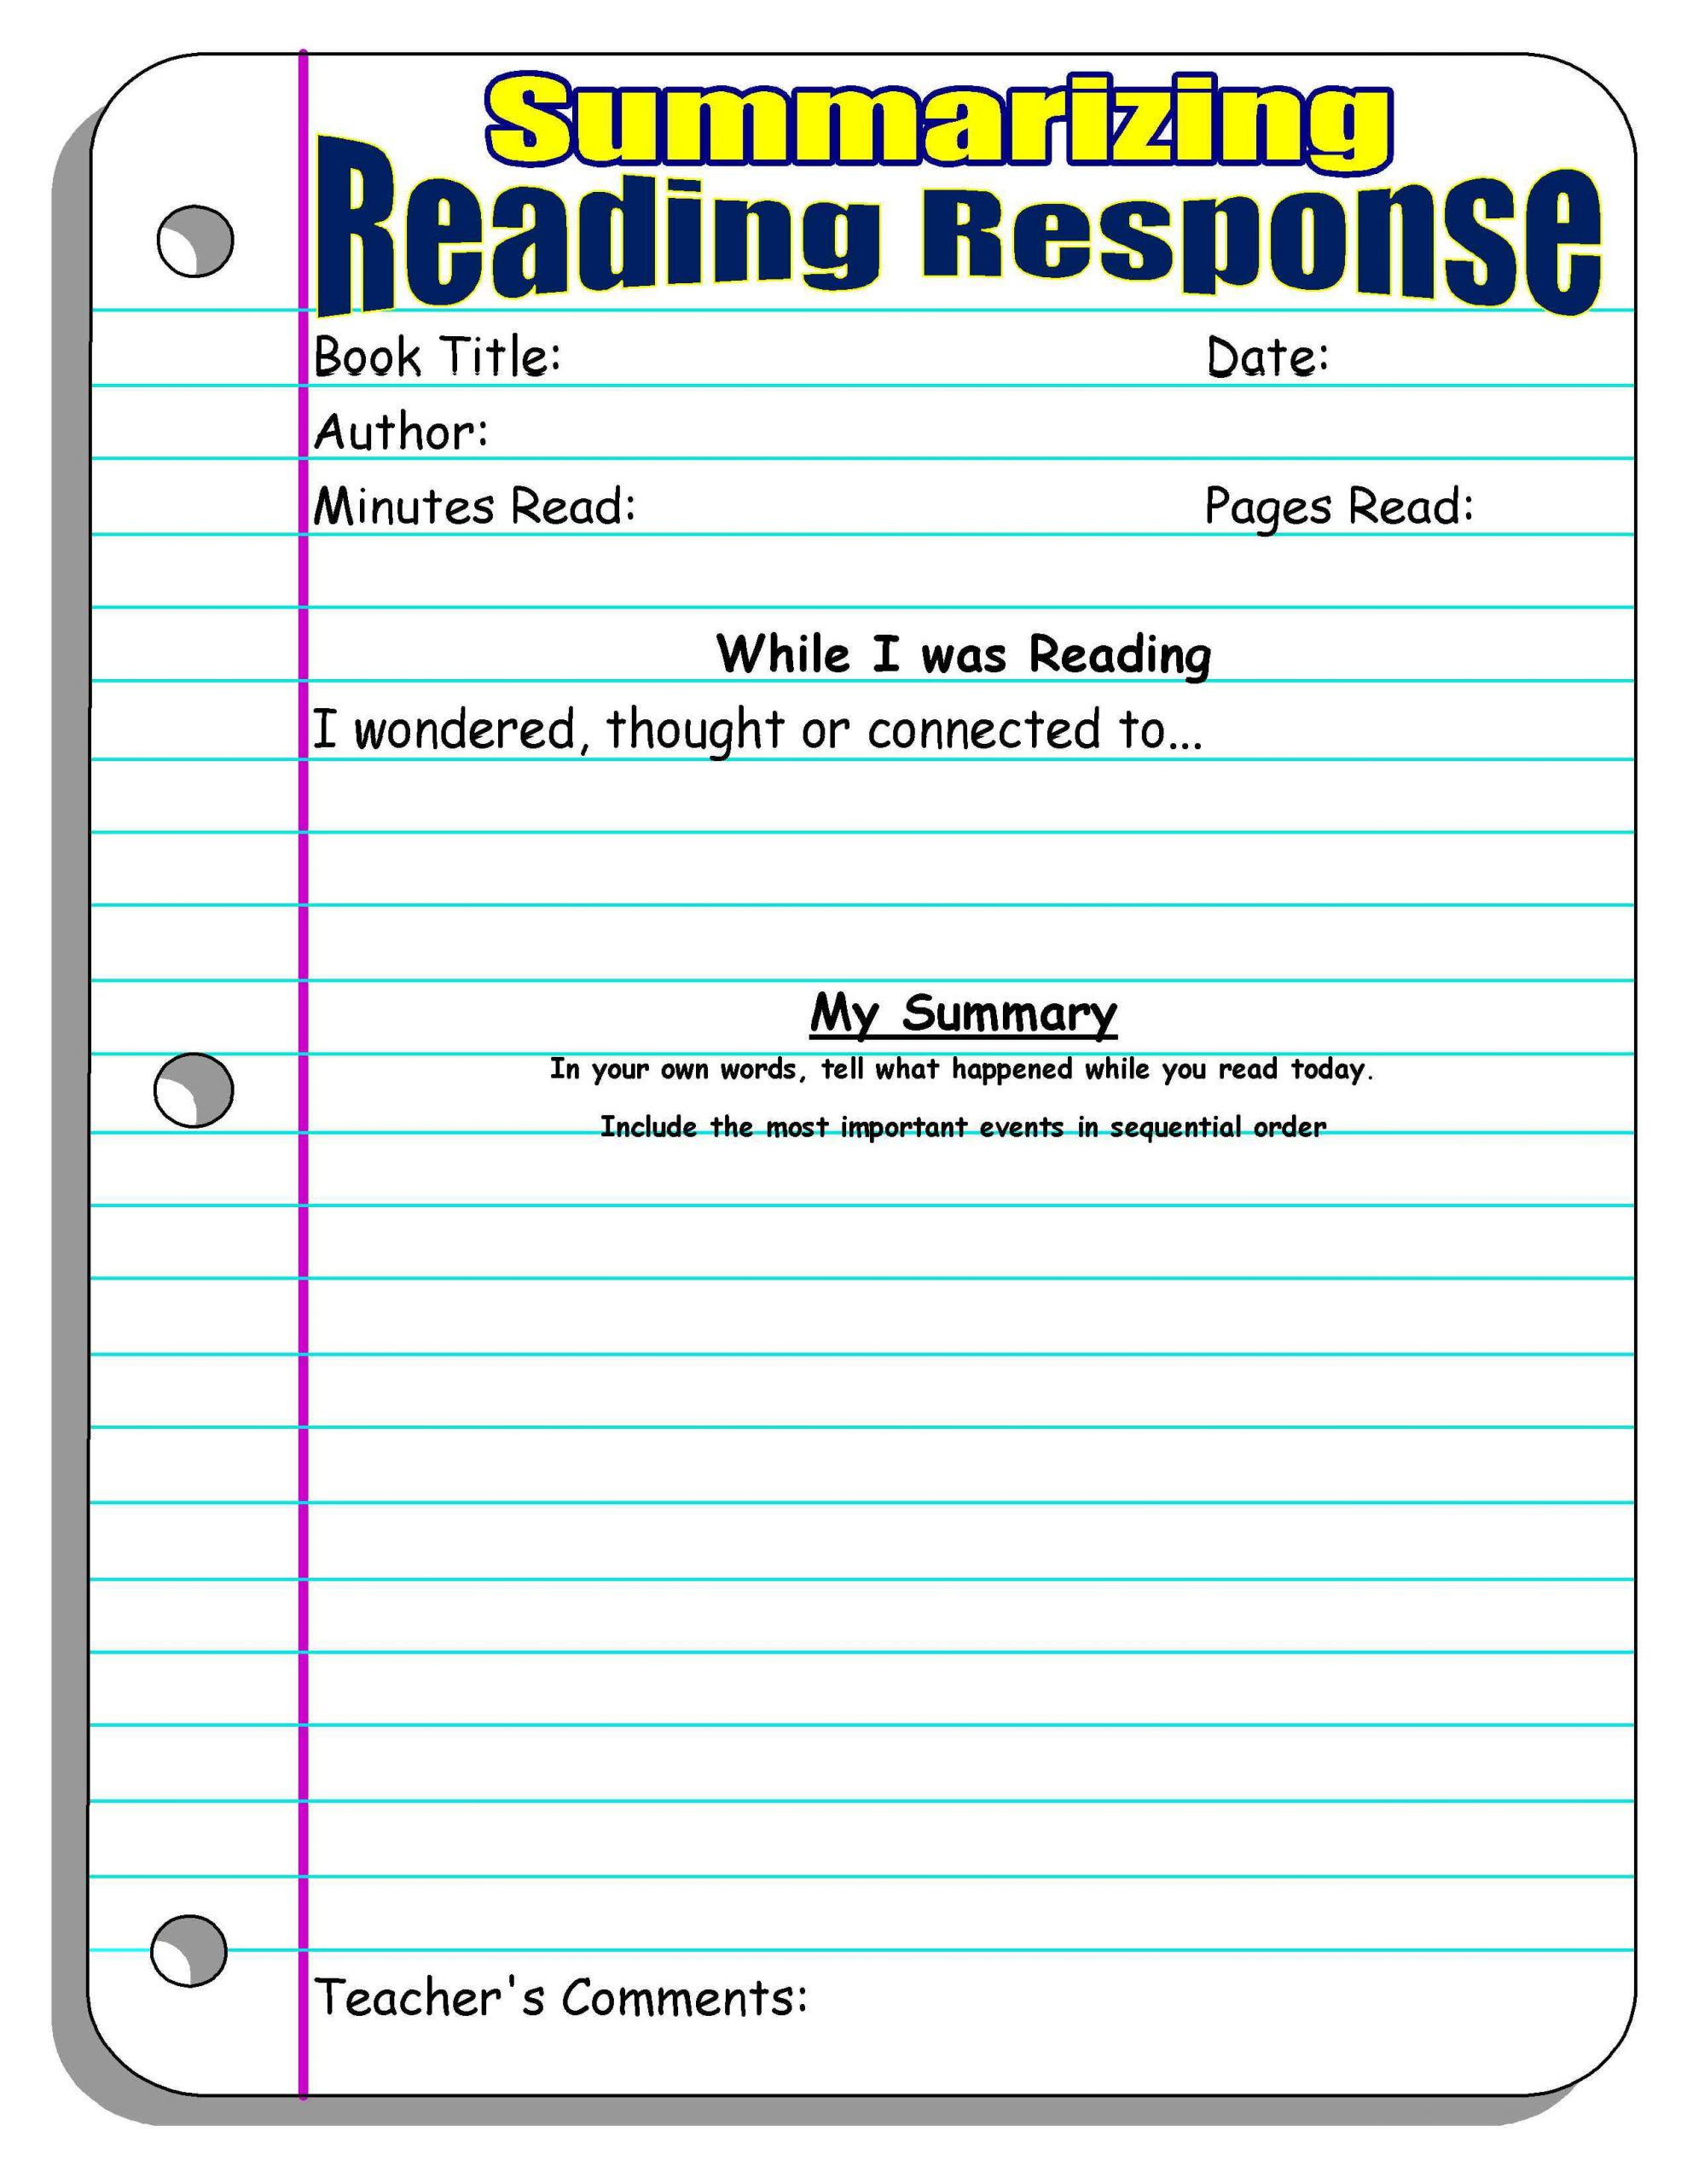 Summary Worksheet 3rd Grade Reading Response forms and Graphic organizers